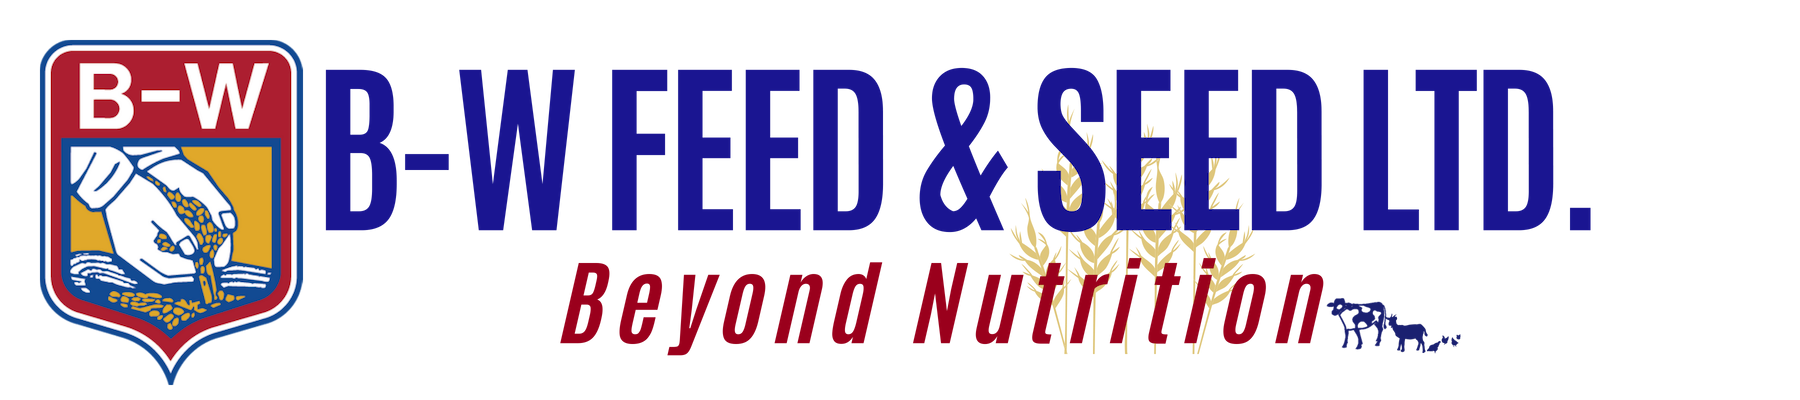 B-W Feed & Seed Ltd. Logo